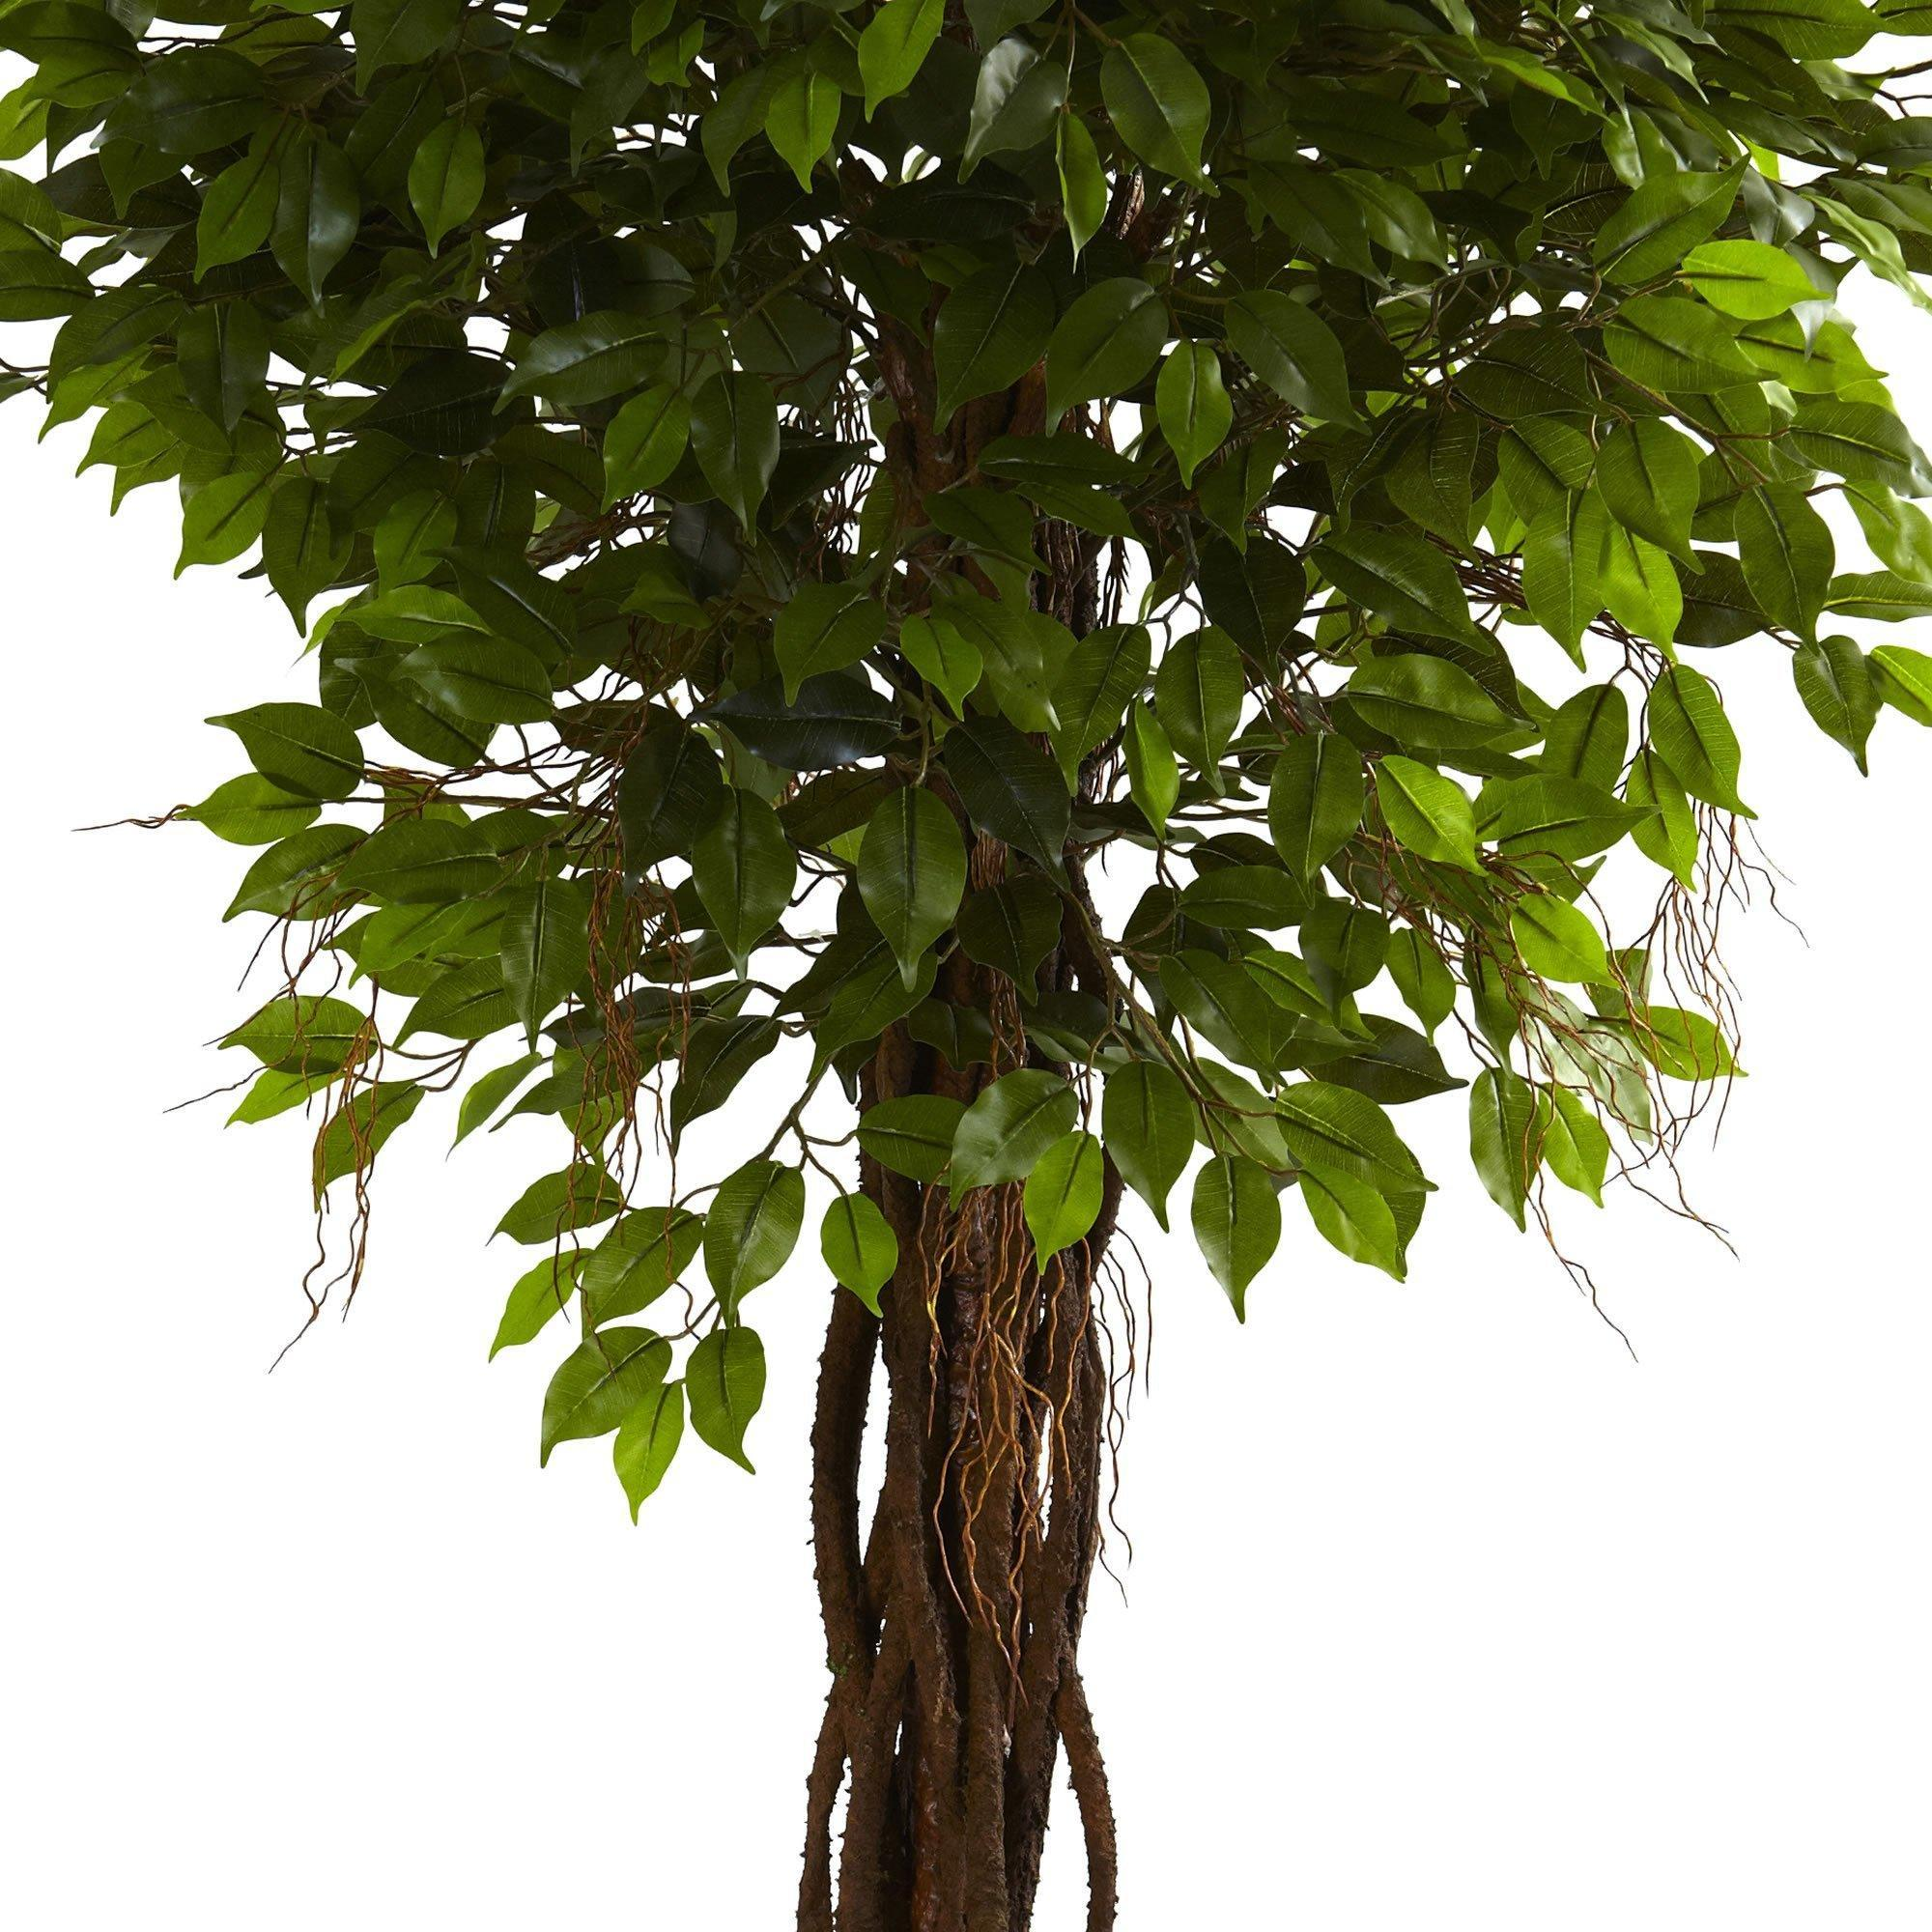 7 5 Ficus Tree Uv Resistant Indoor Outdoor Nearly Natural,Steamed Broccoli Brockly